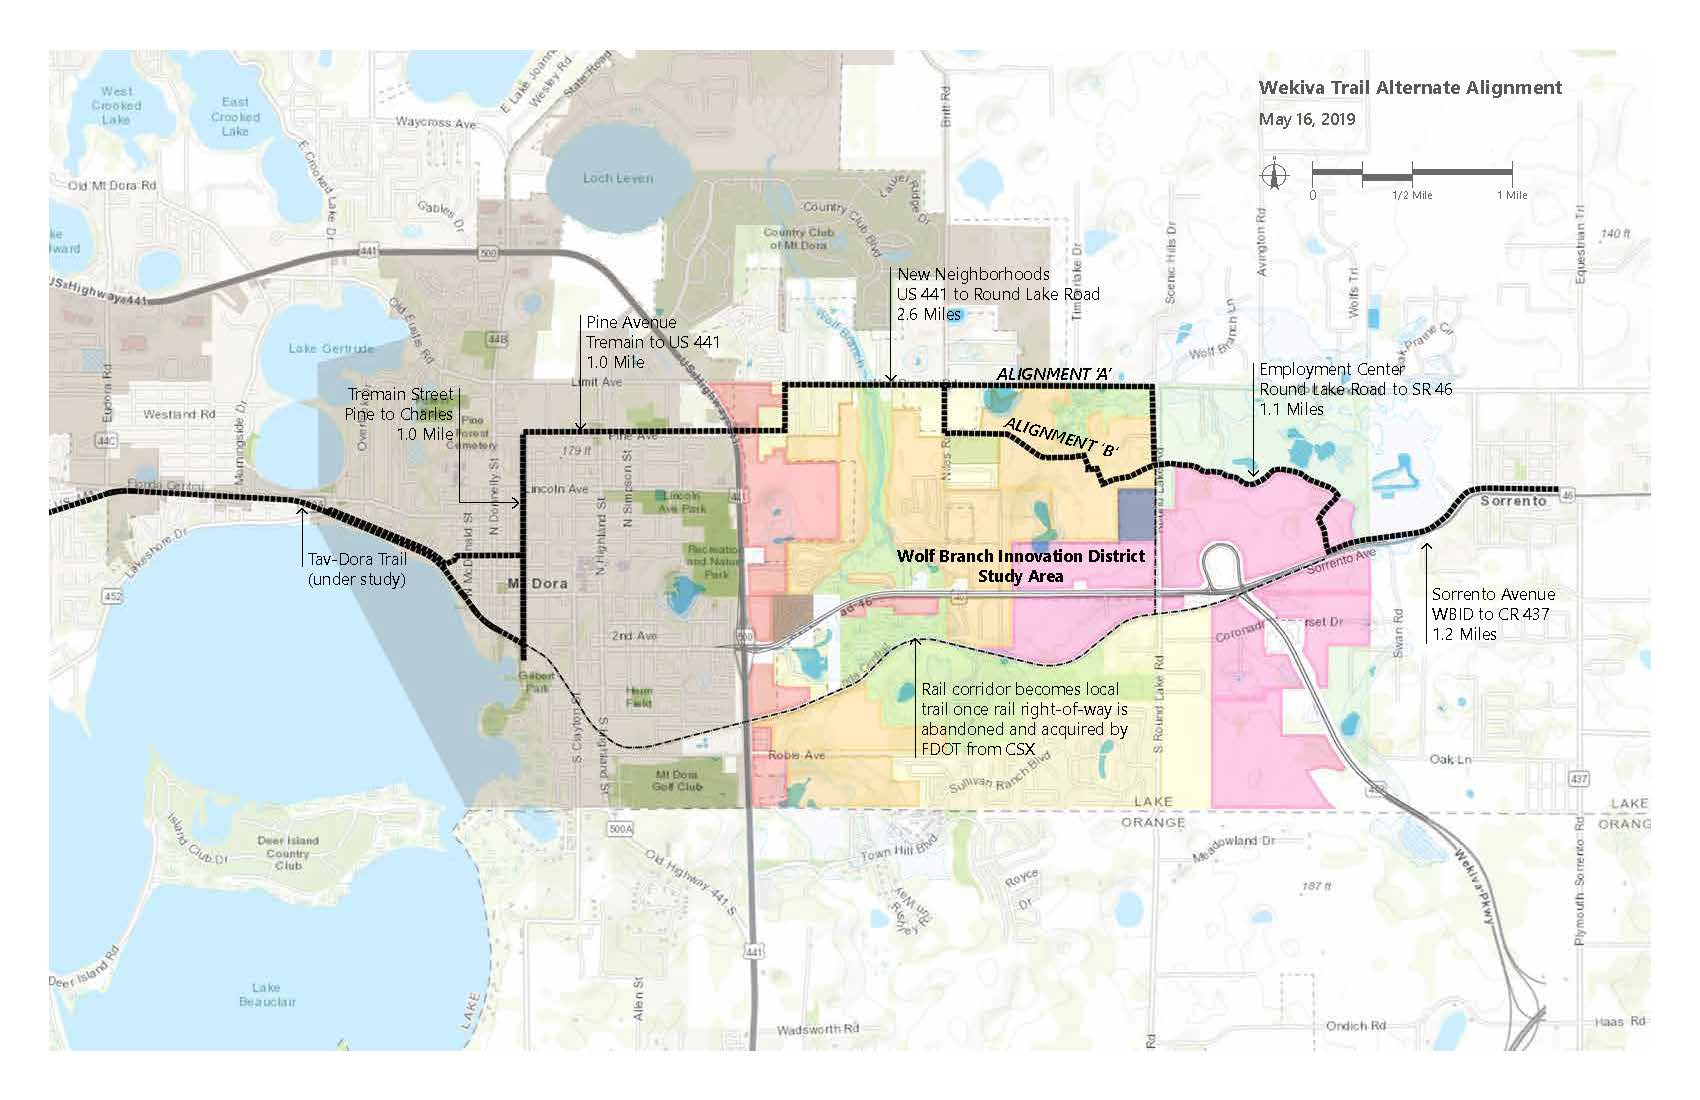 Wolf Branch Innovation District Weikva Trail Alt Alignment Map as of 2019-05-16